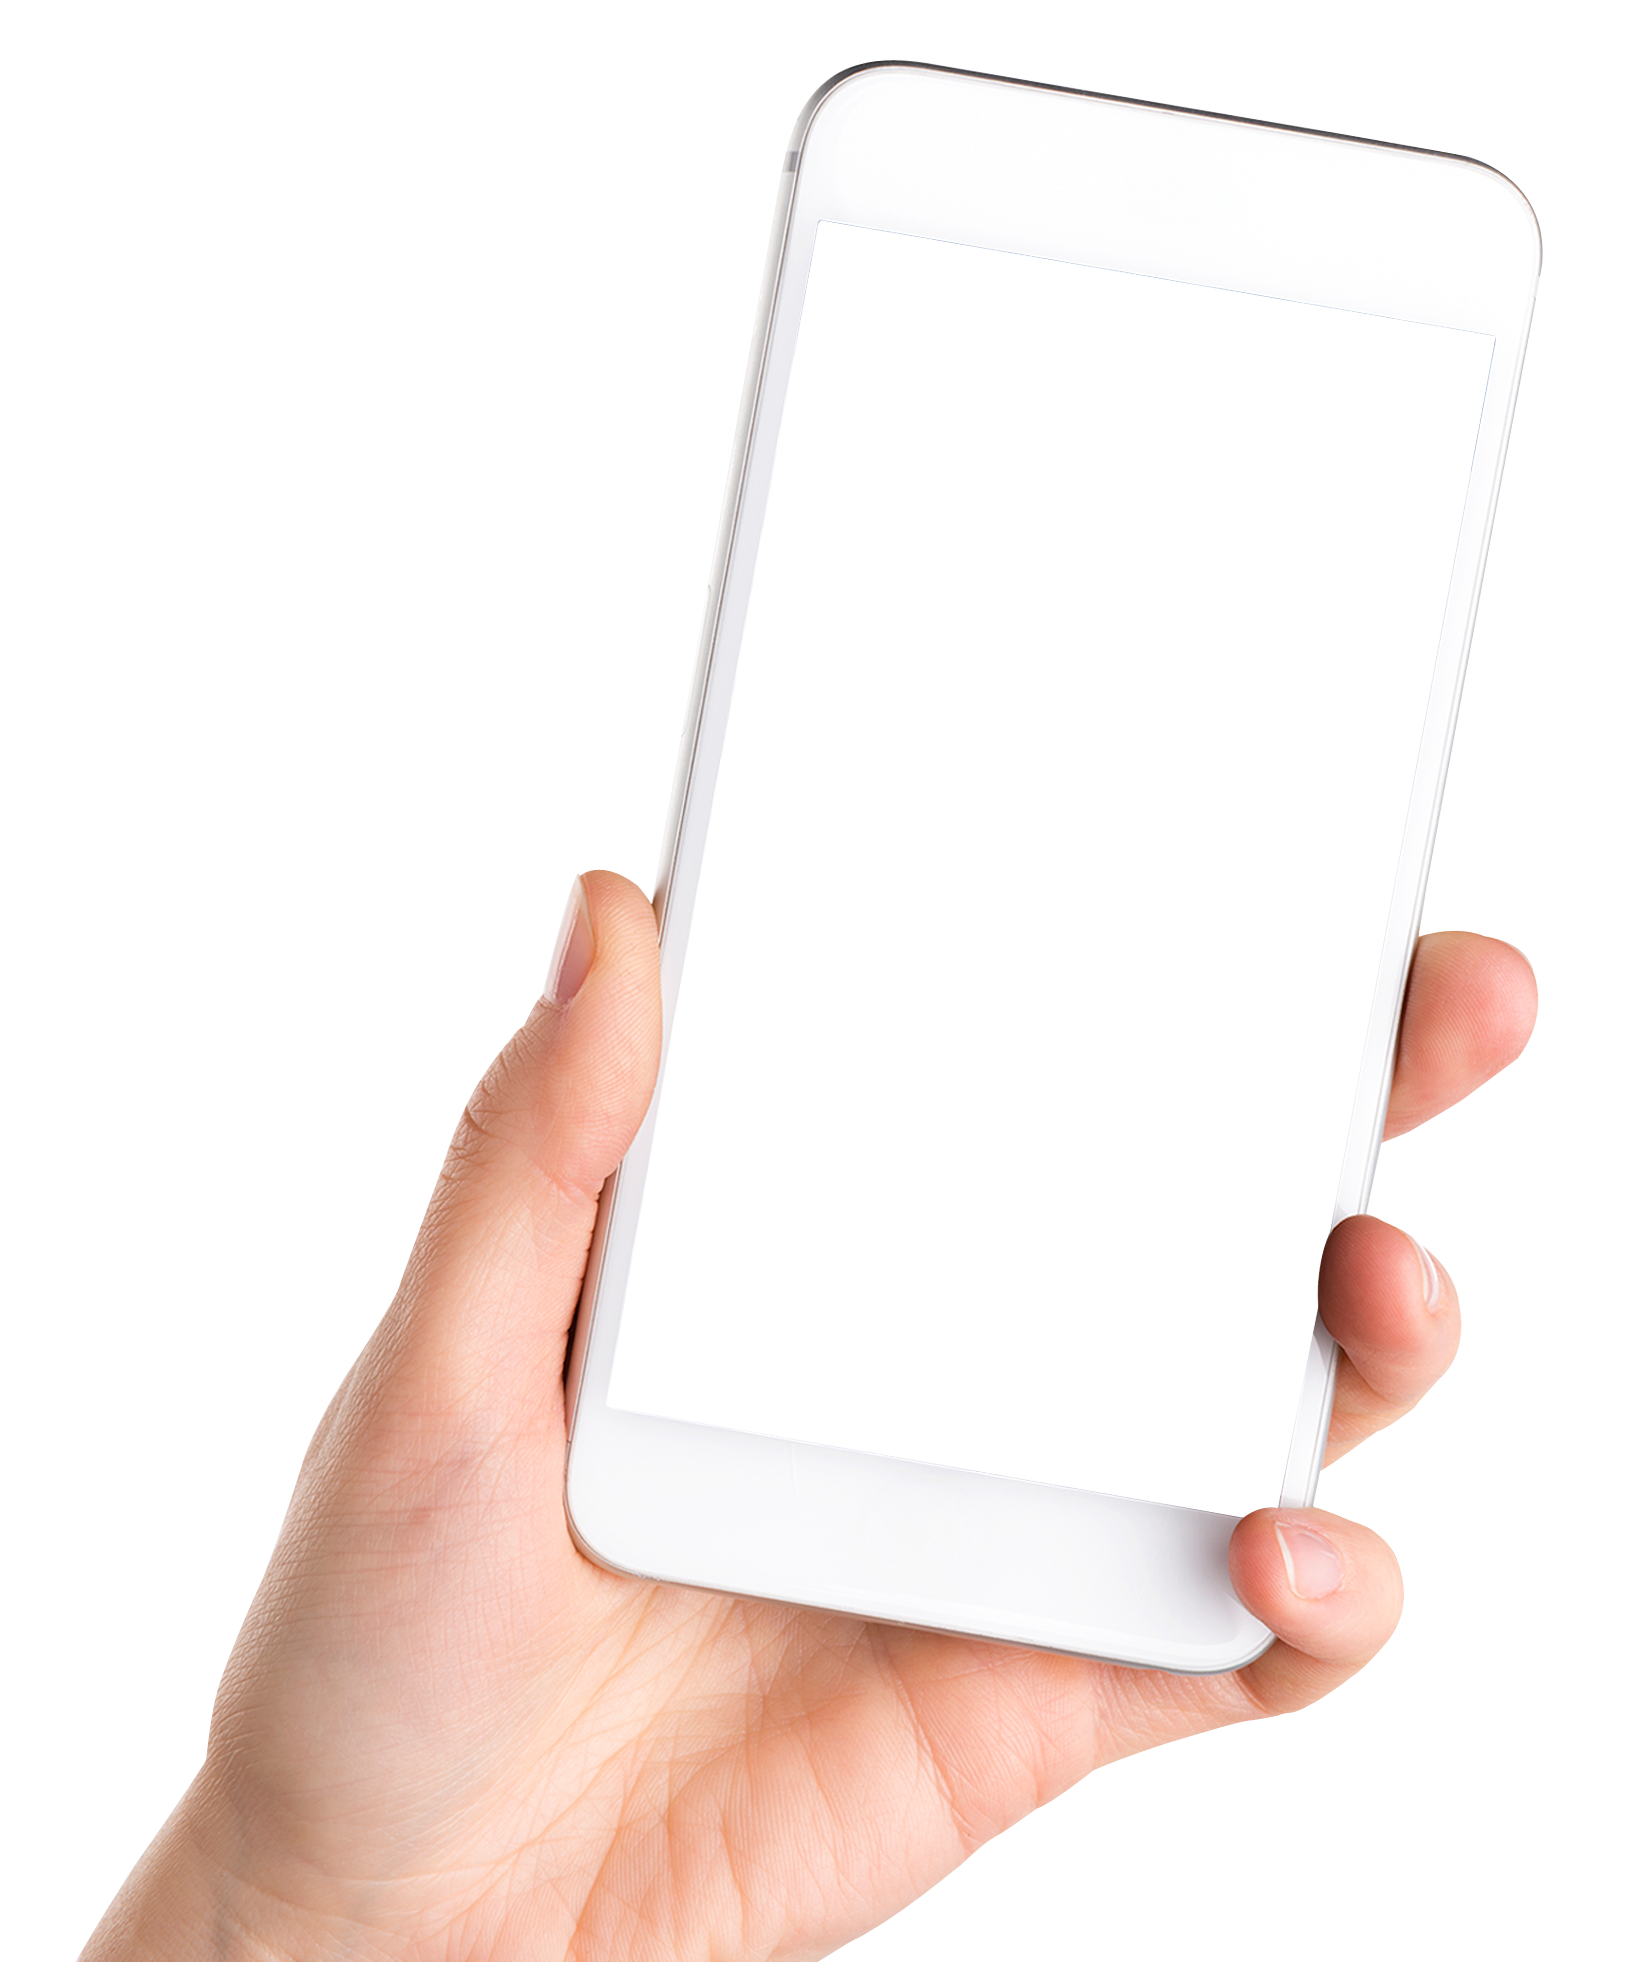 Holding telephone png. Phone in hand